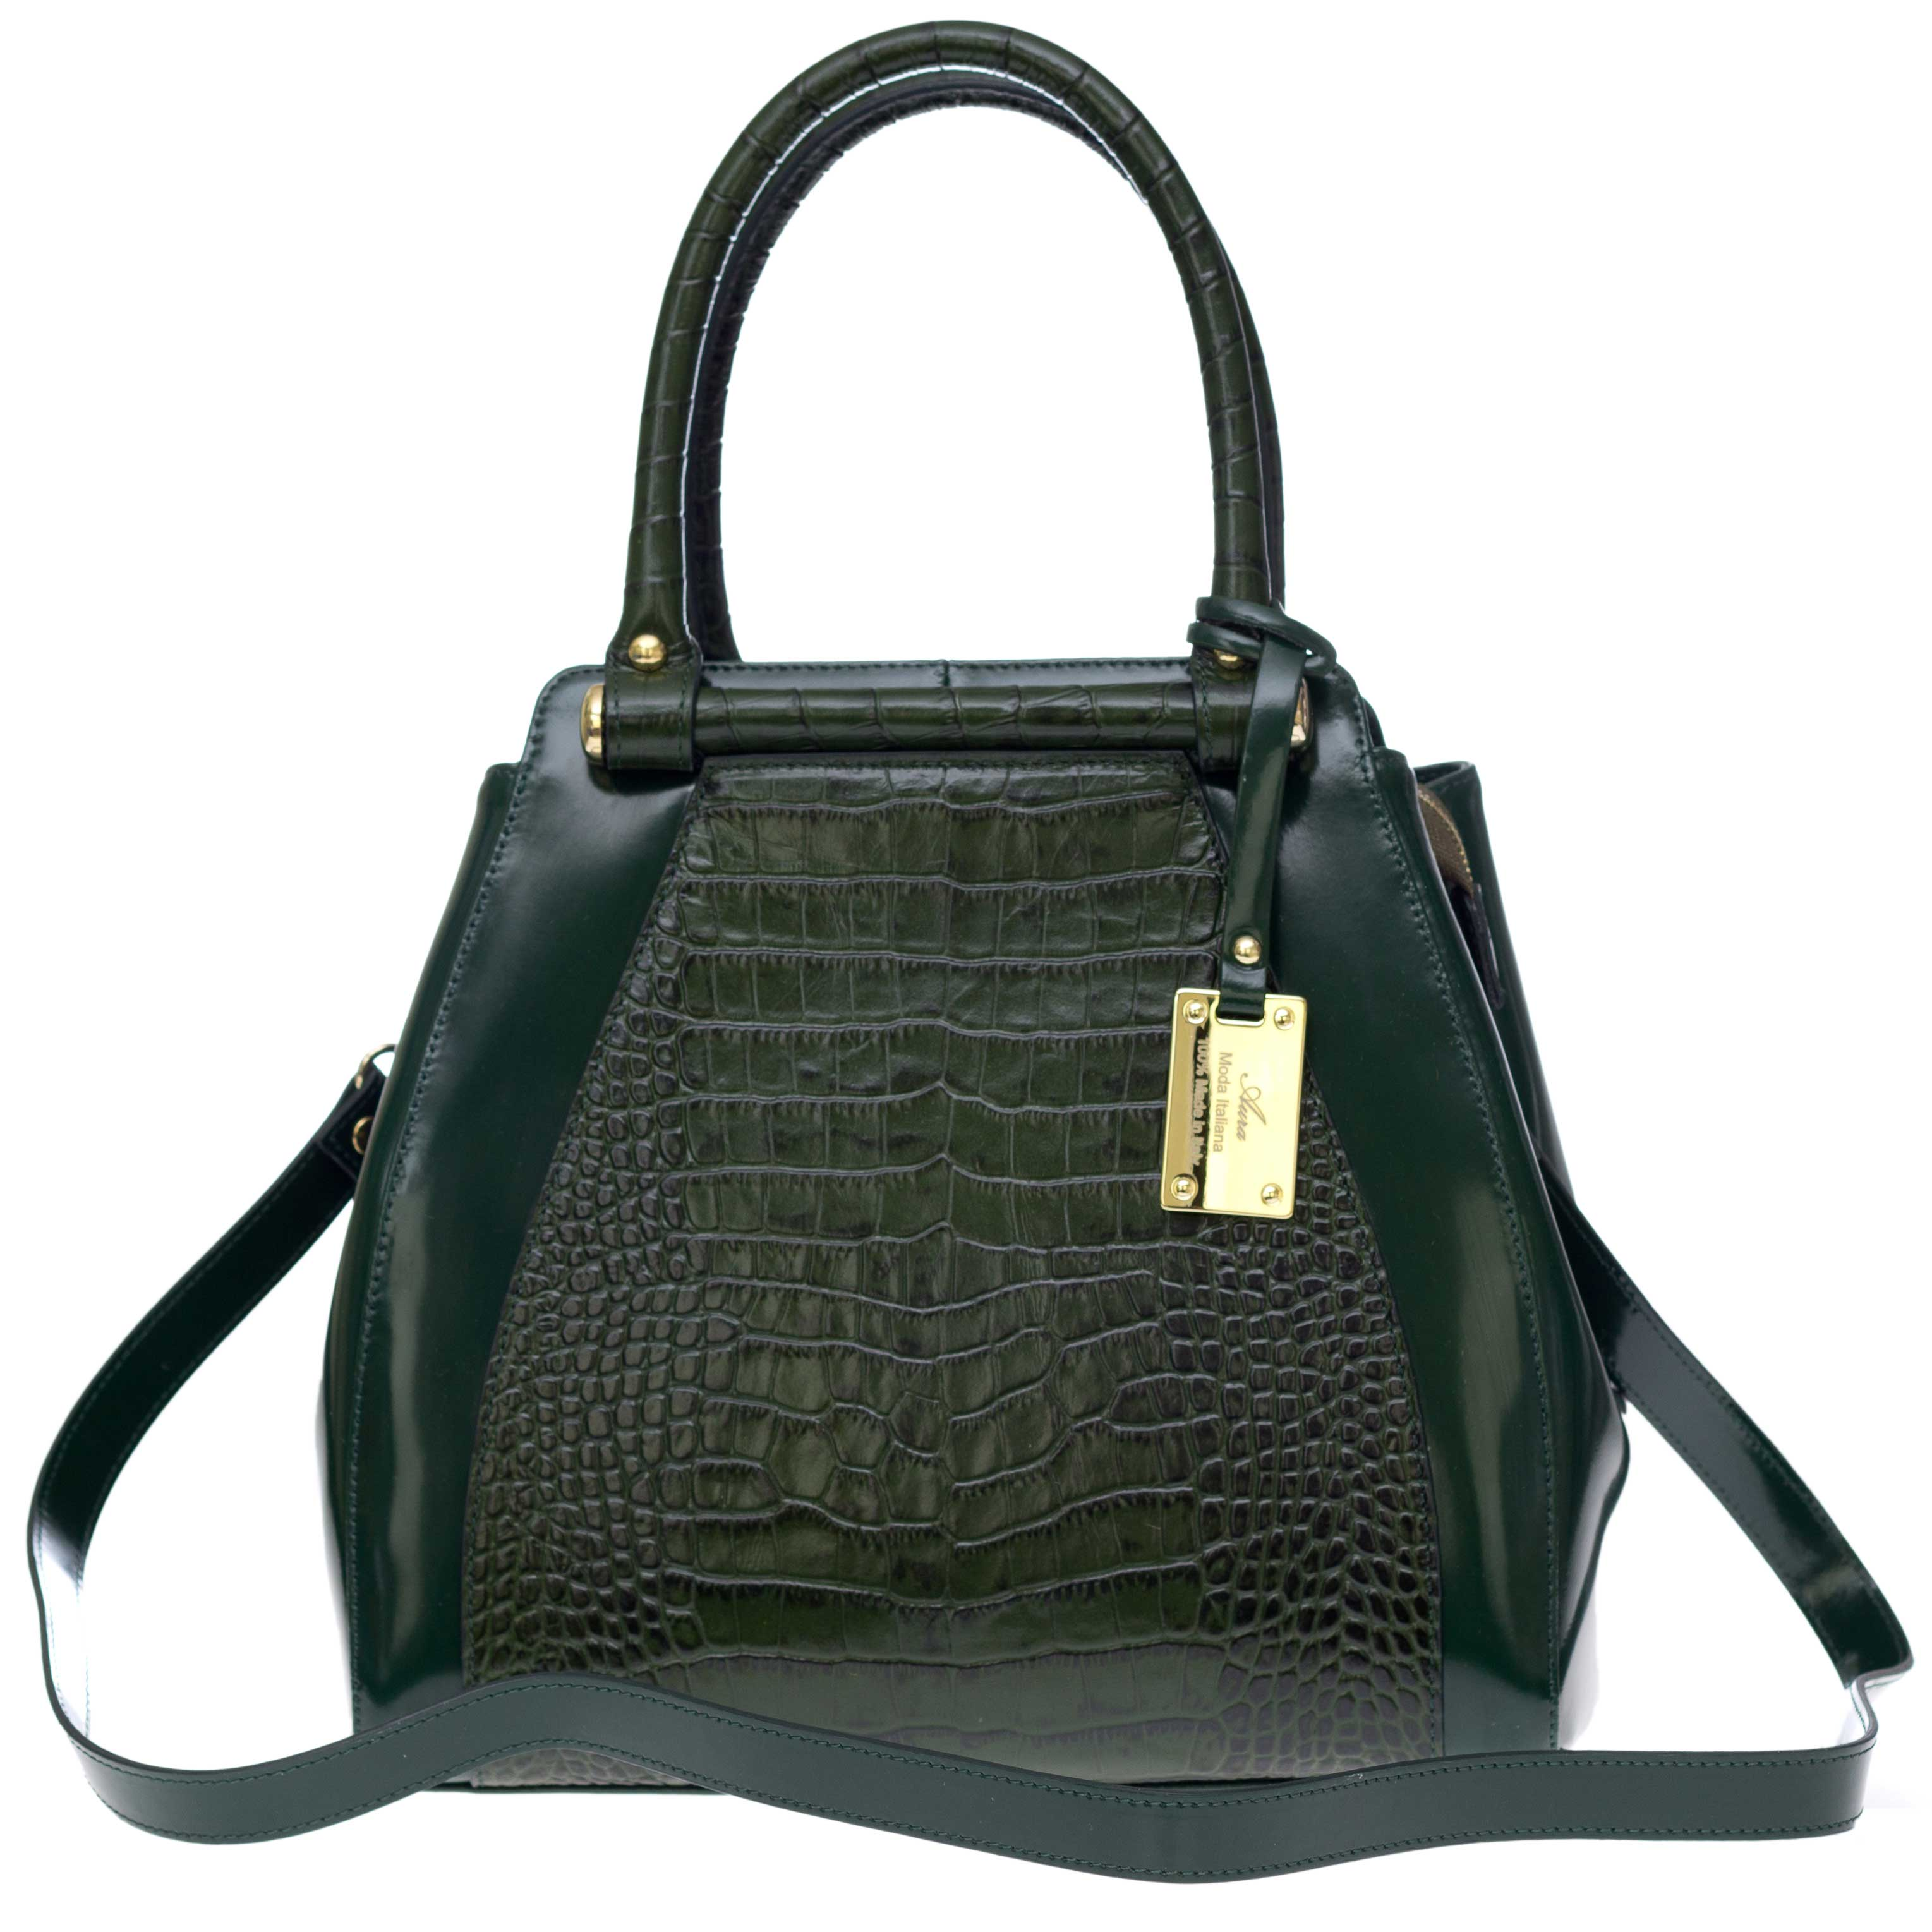 AURA Italian Made Green Crocodile Embossed Leather Structured Tote